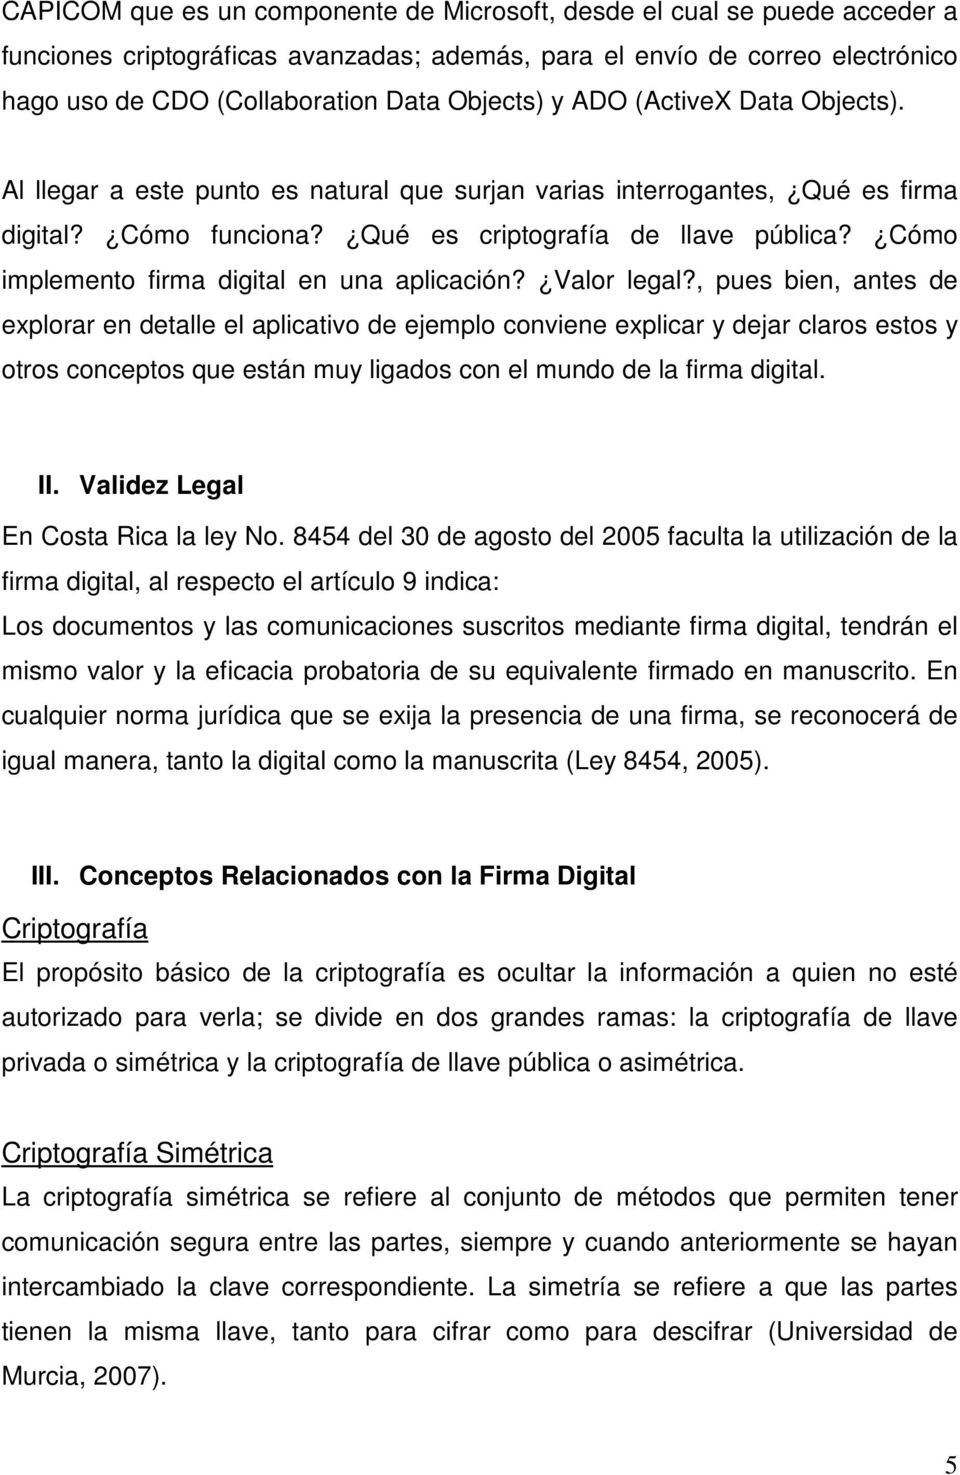 Cómo implemento firma digital en una aplicación? Valor legal?